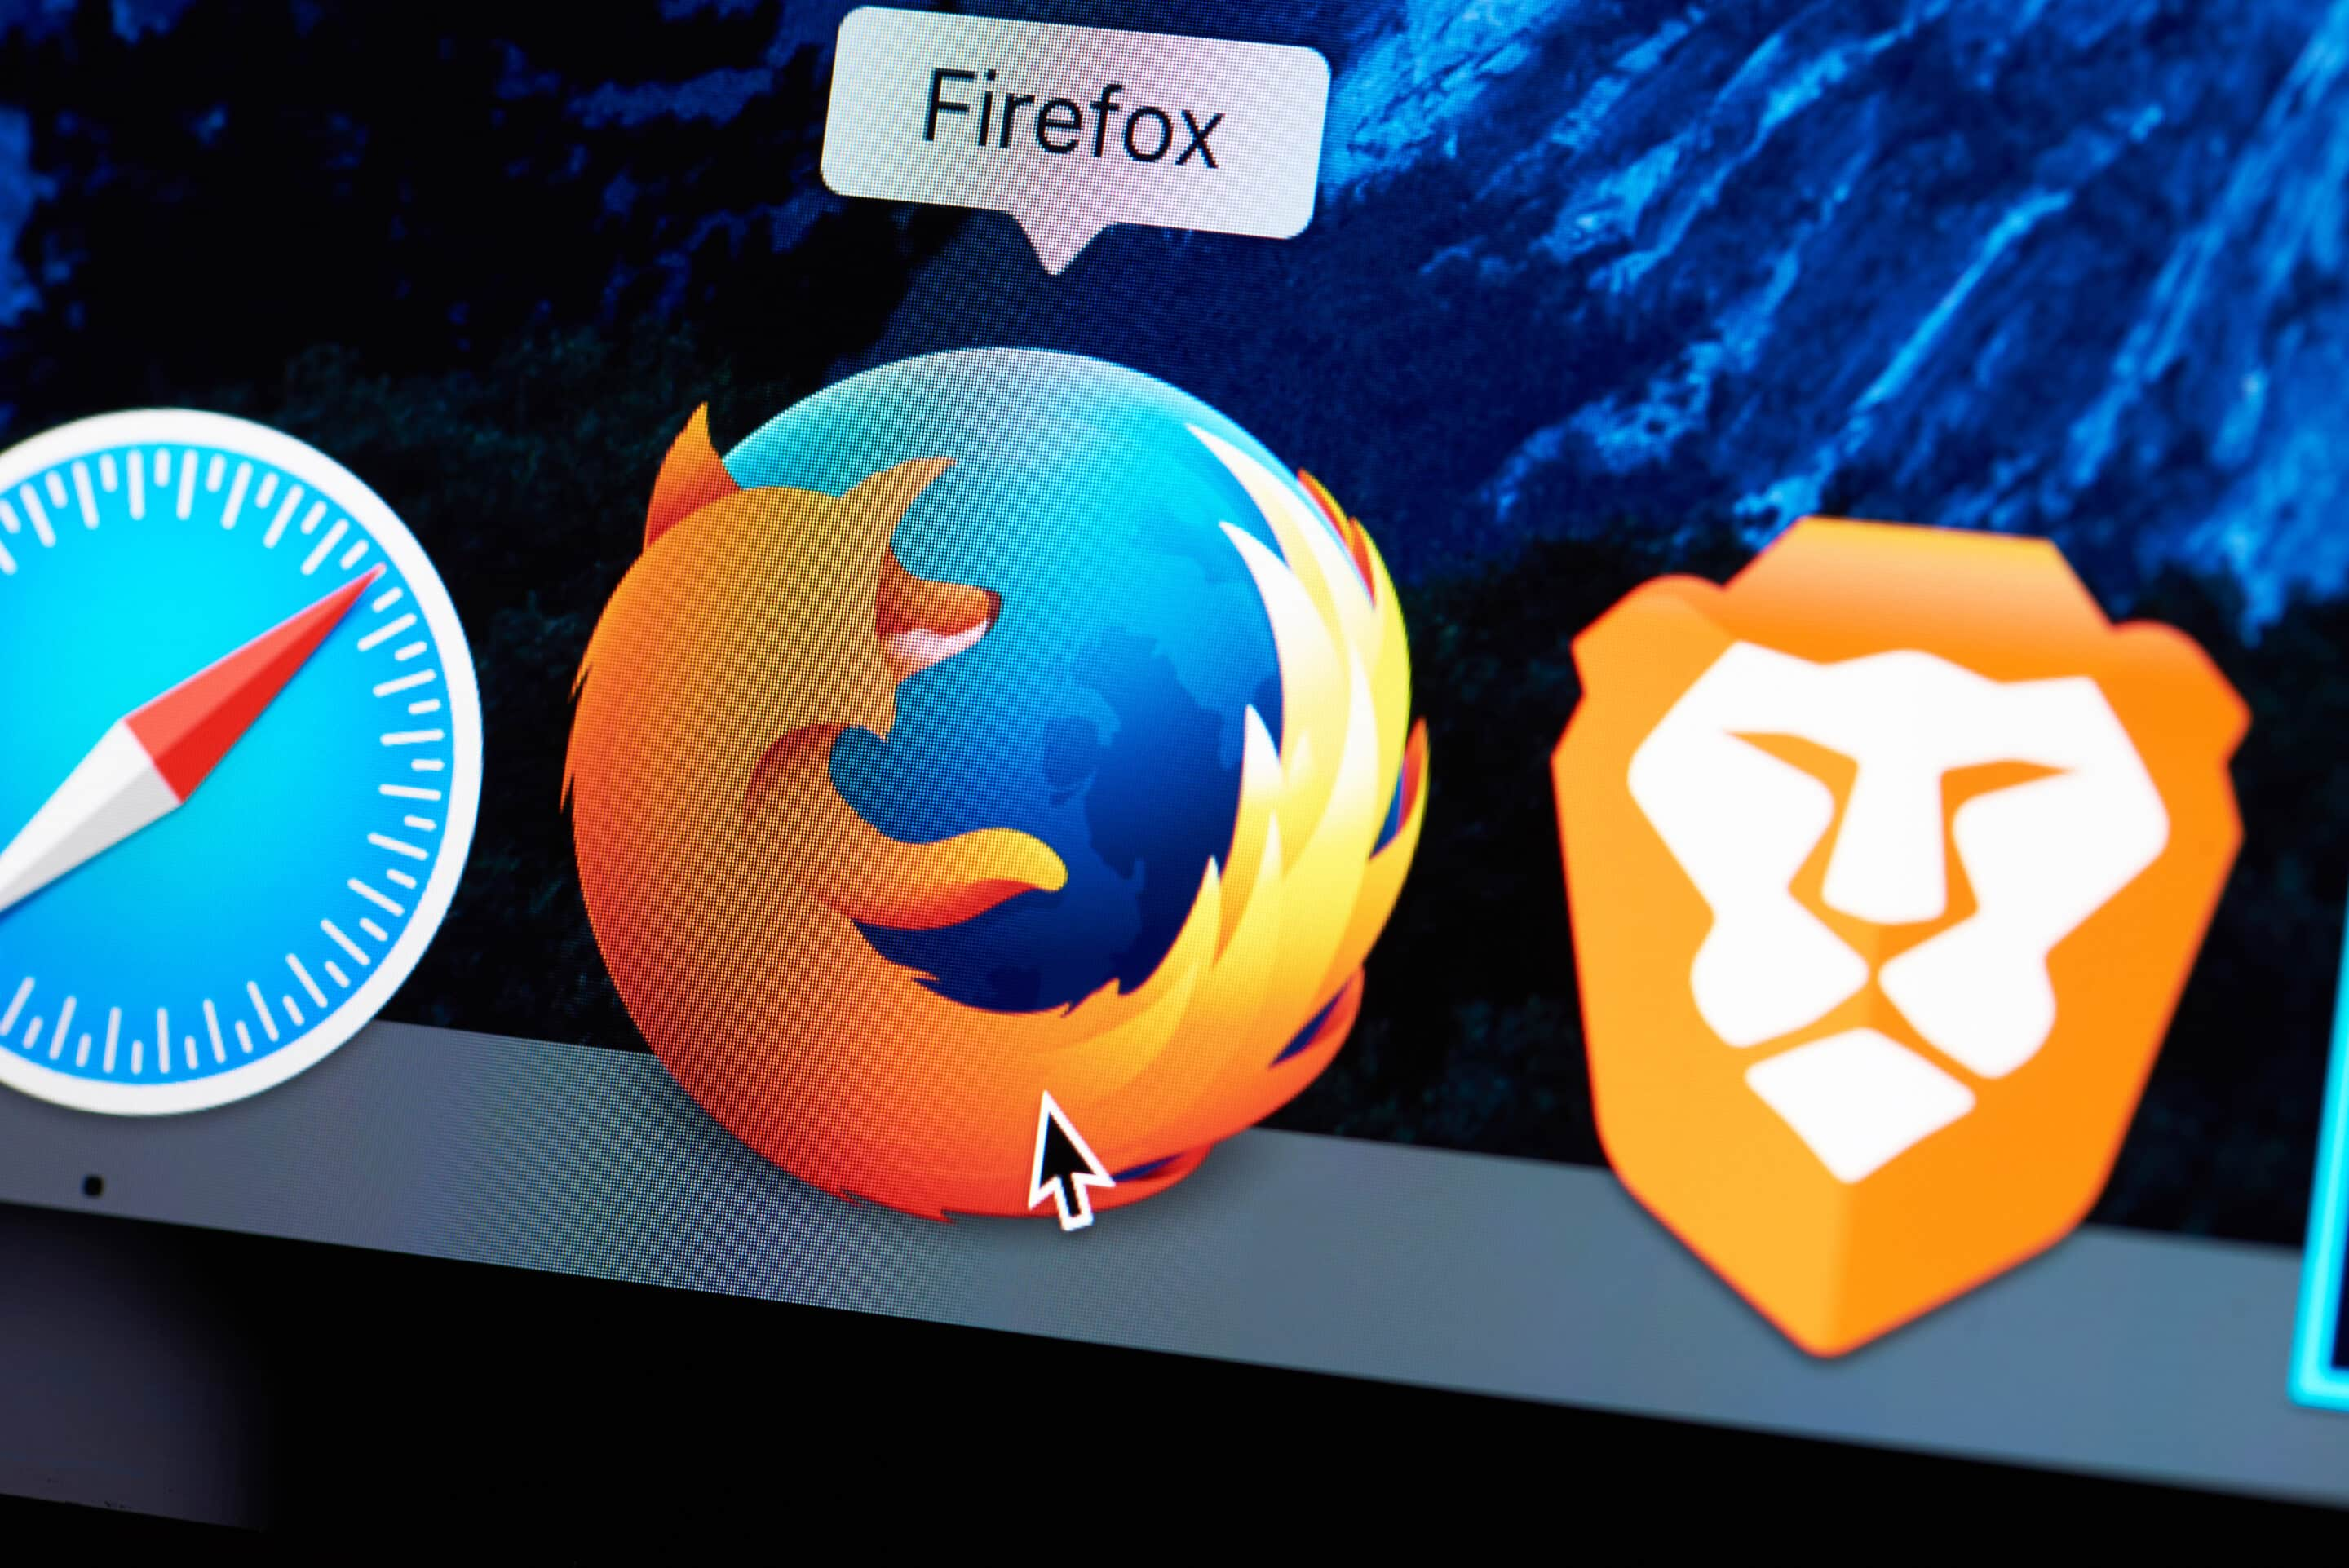 How to Easily Change the Default Web Browser on a Mac